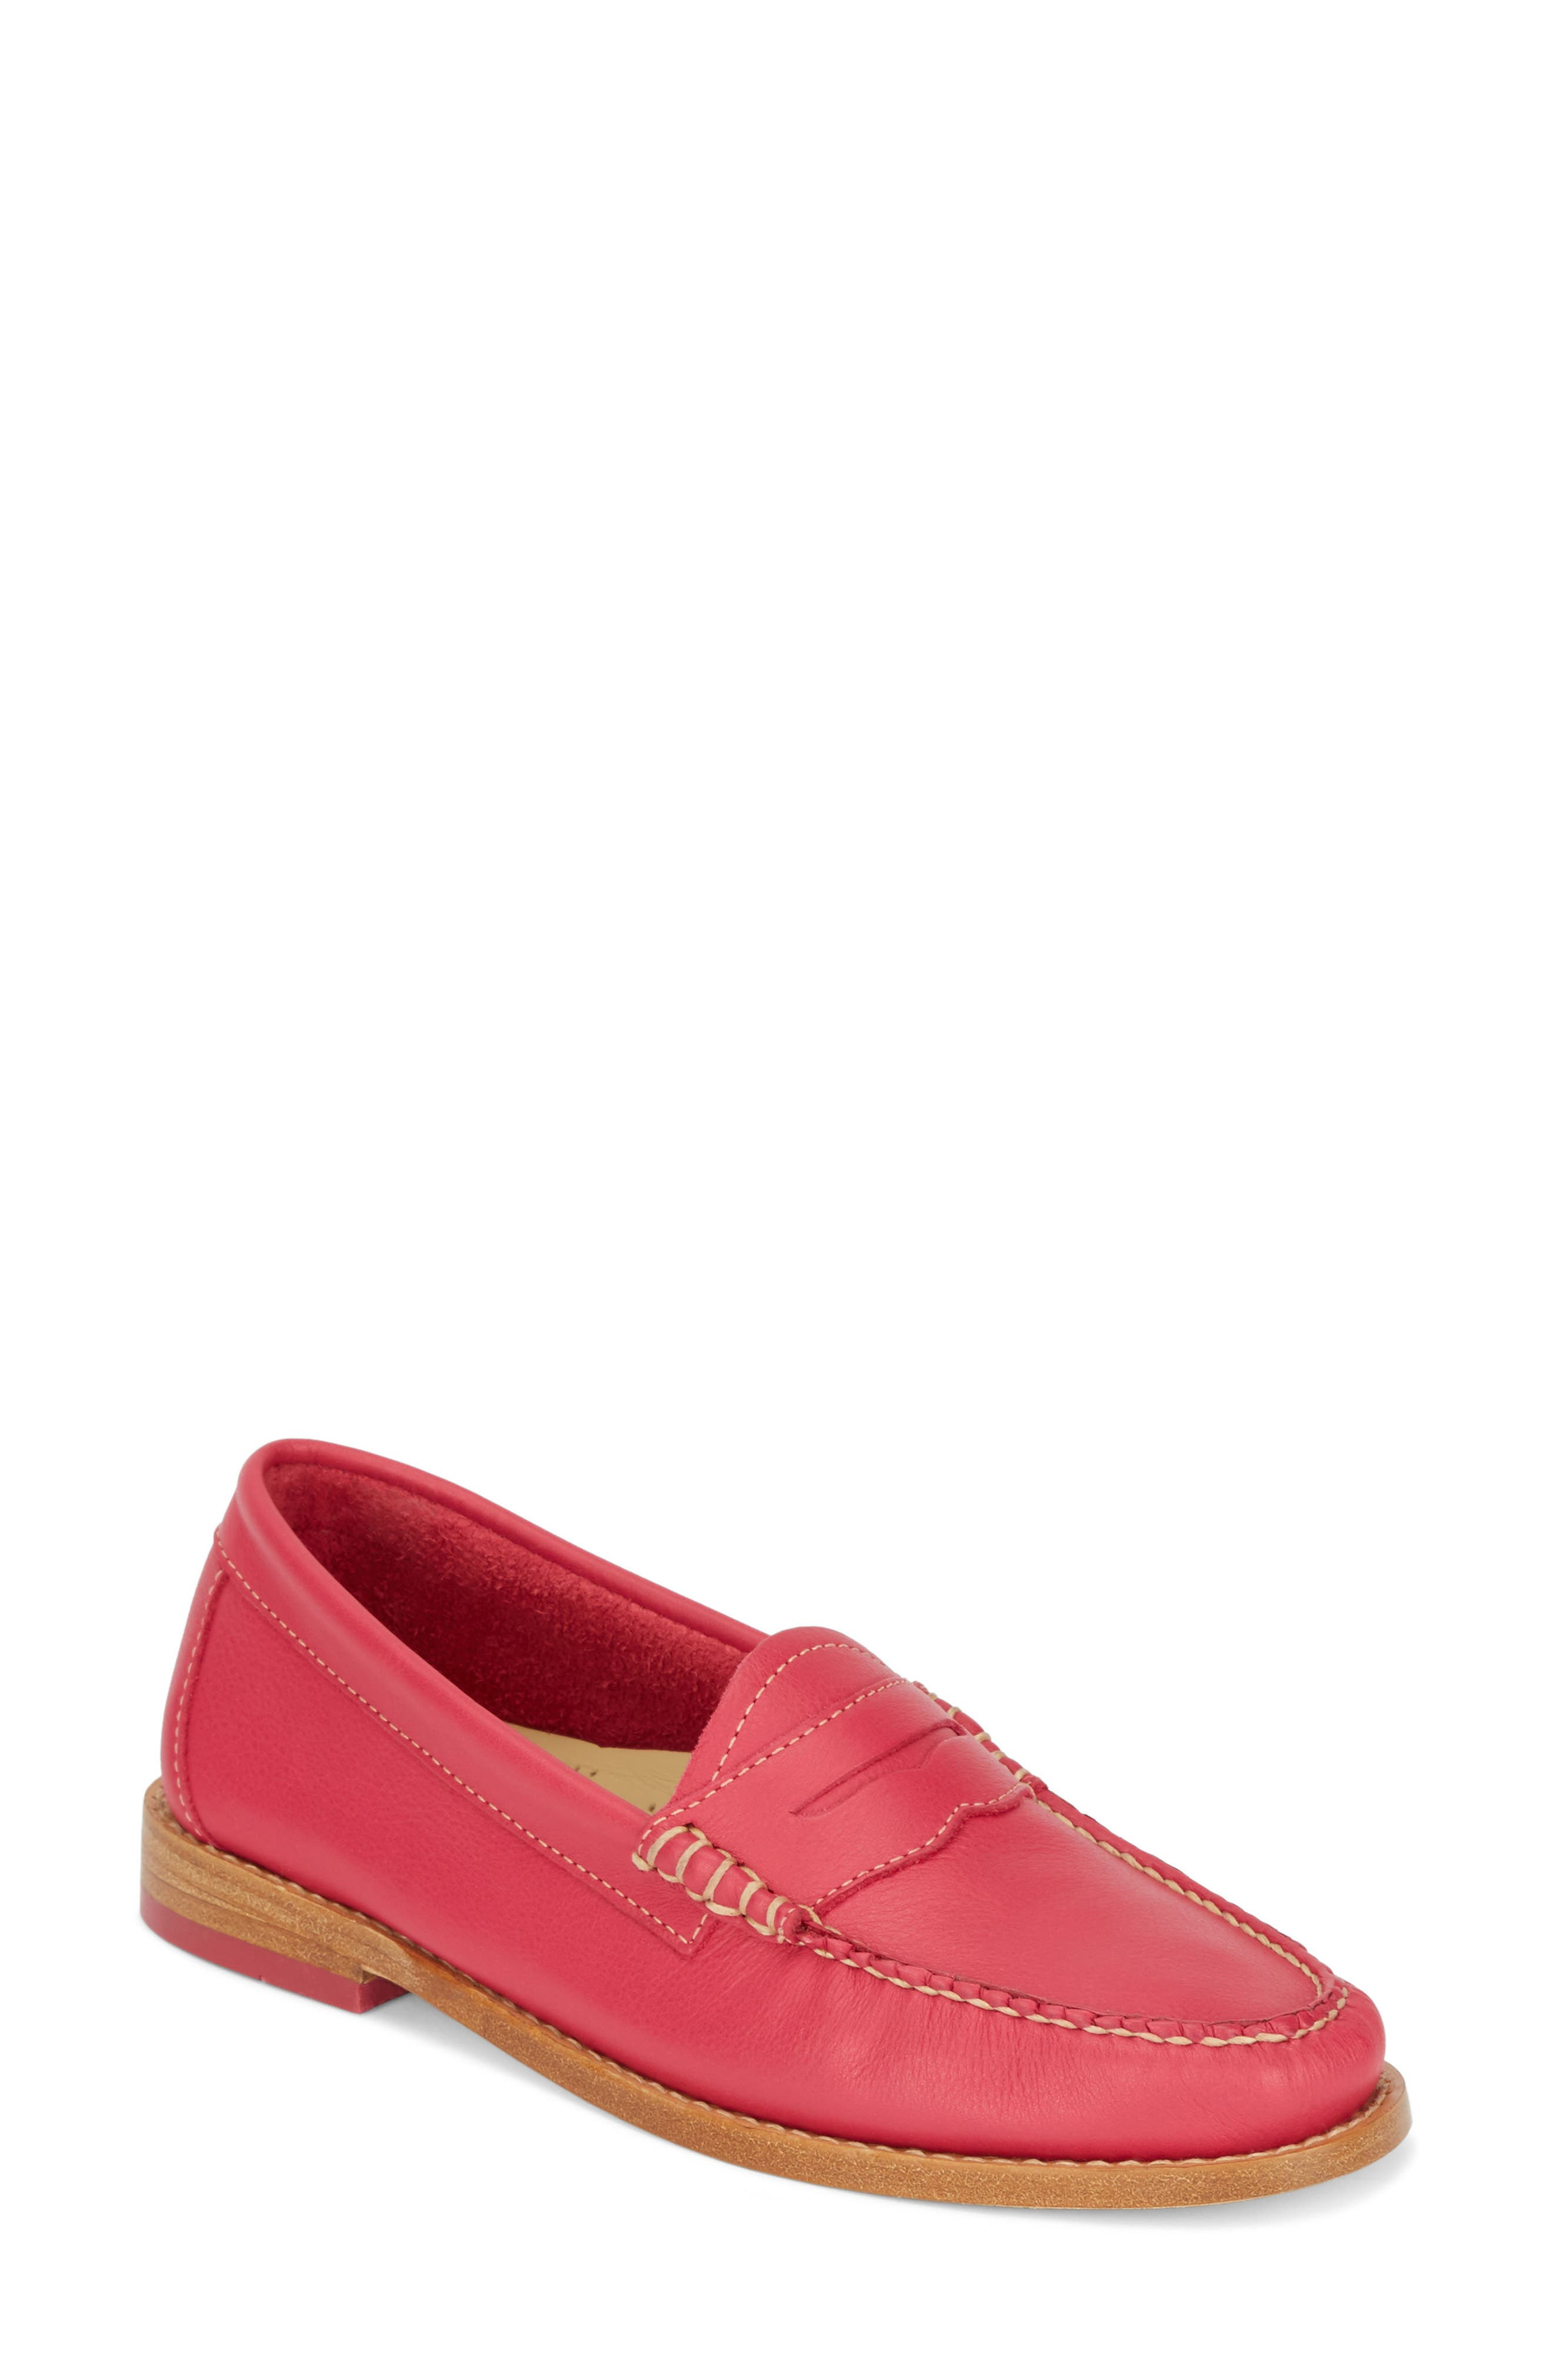 'Whitney' Loafer,                             Main thumbnail 1, color,                             BERRY PINK LEATHER